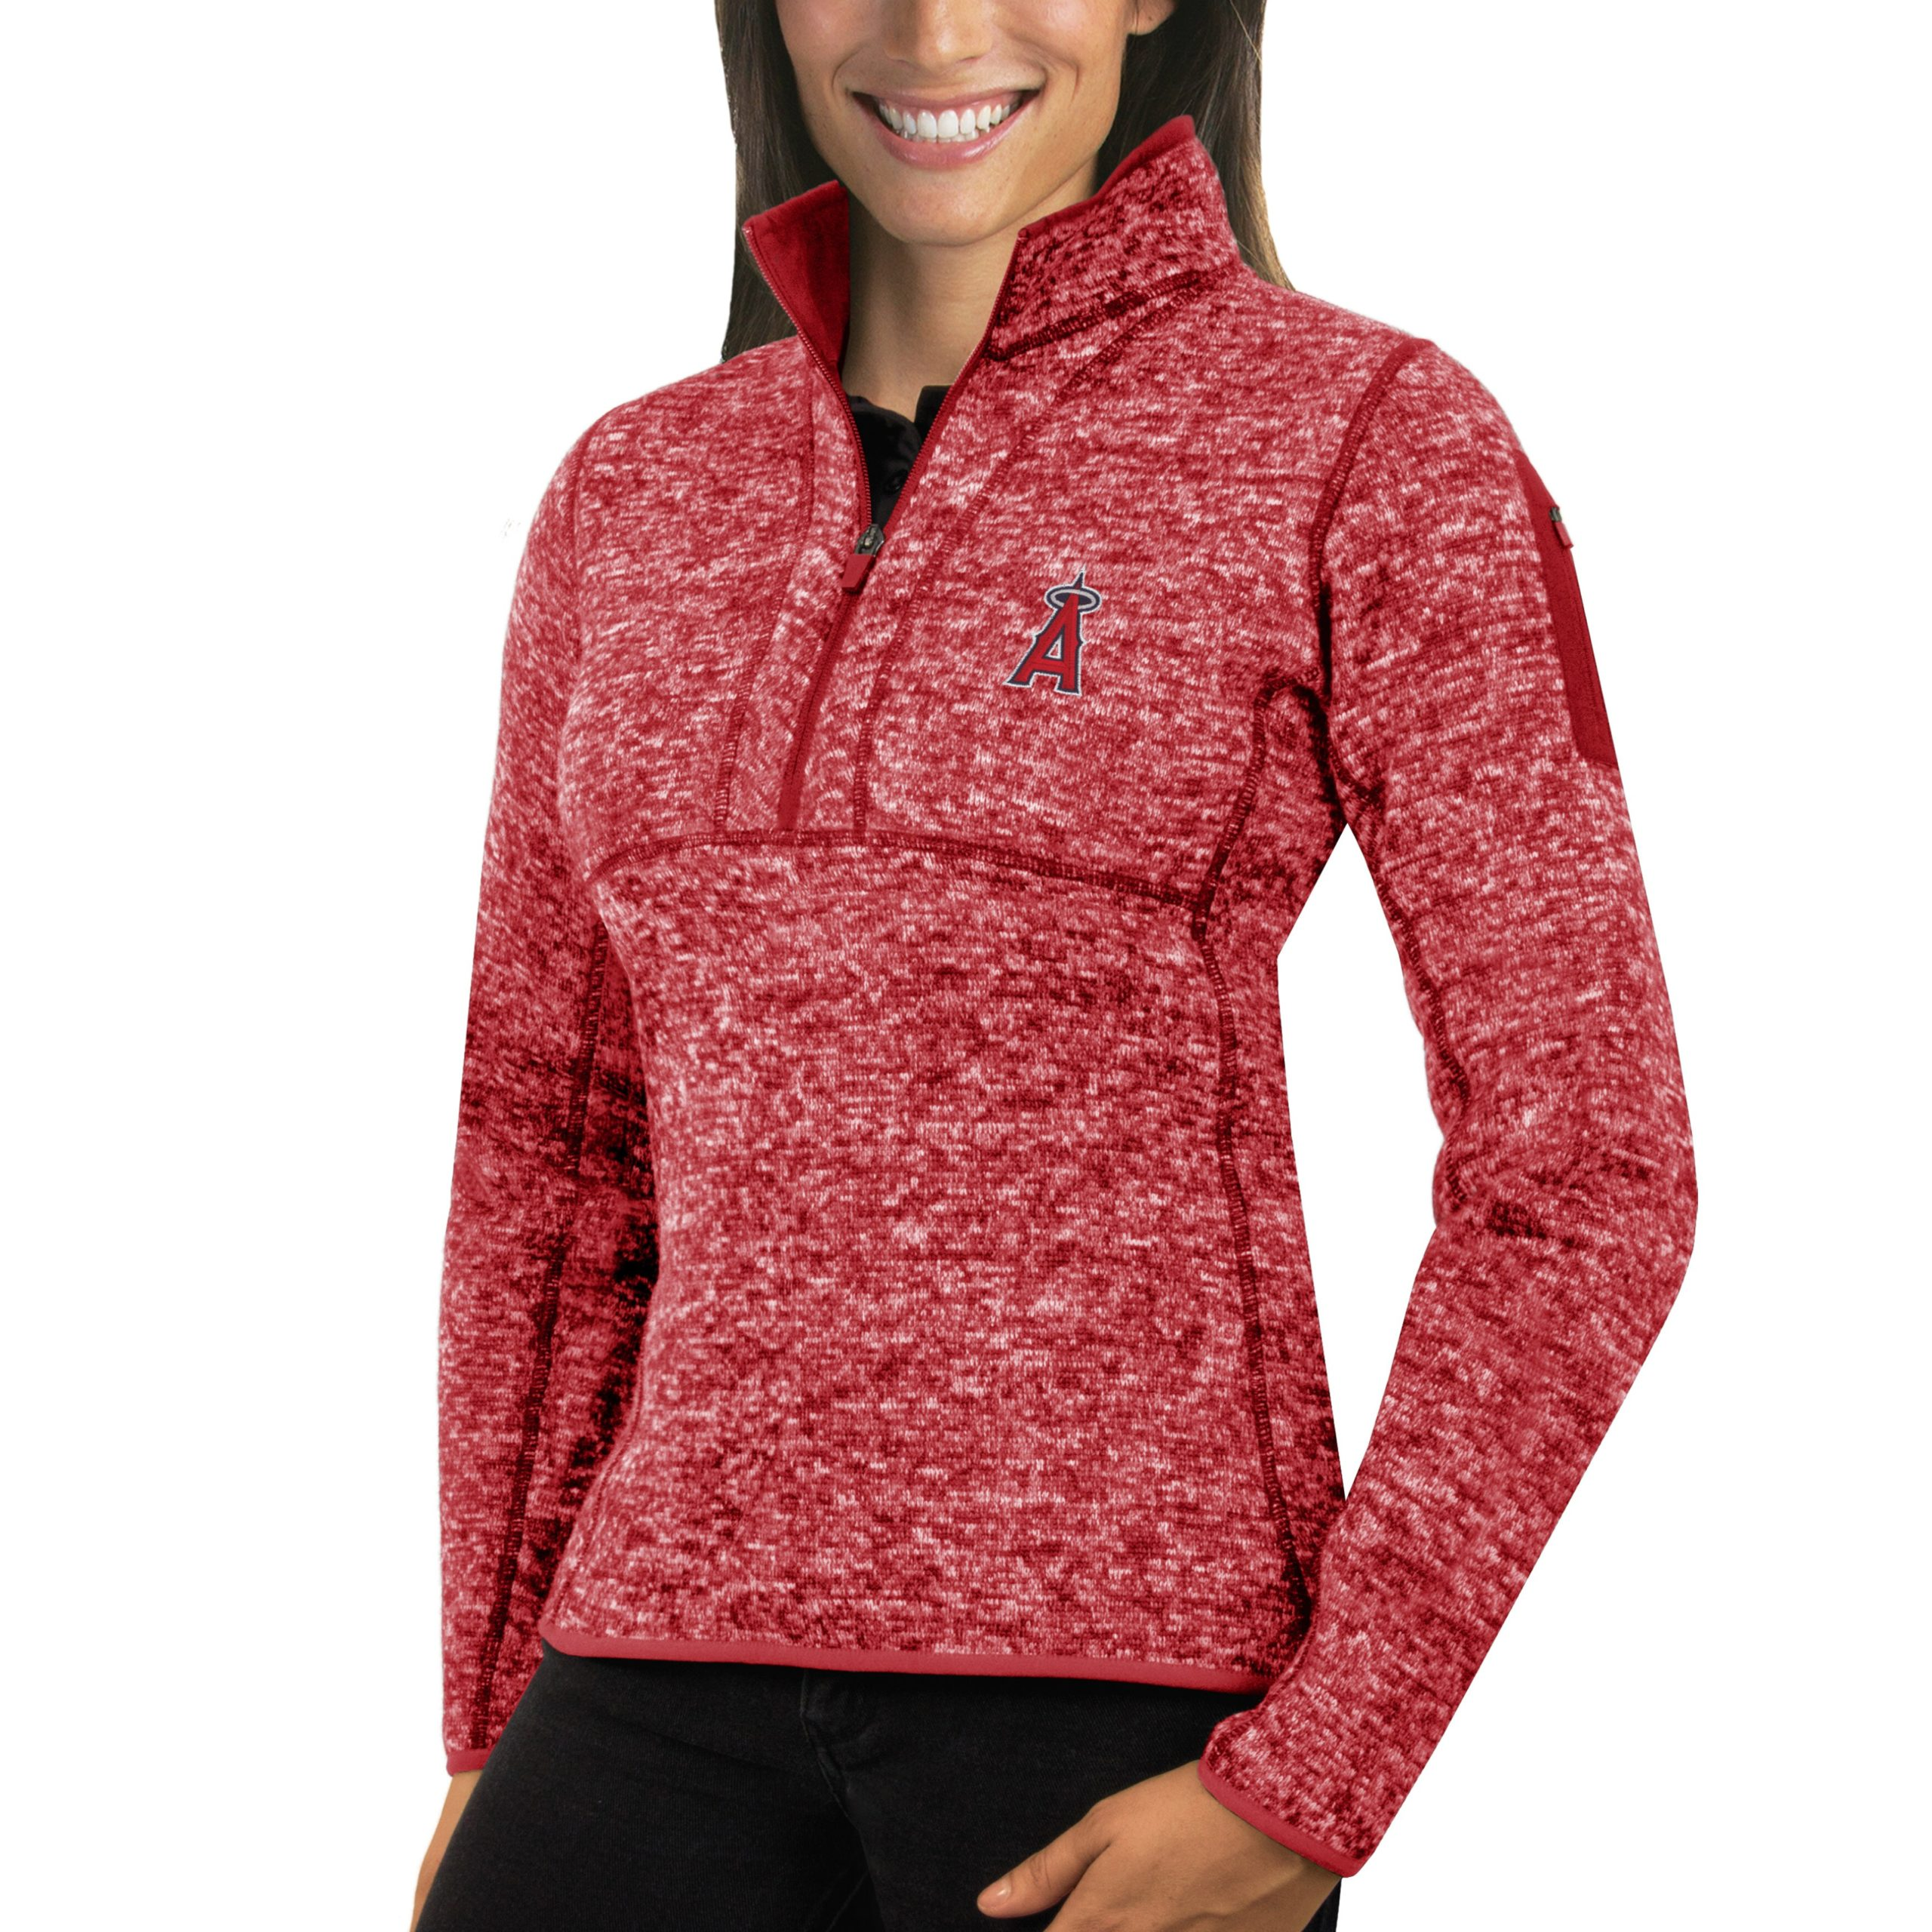 Los Angeles Angels Antigua Women's Fortune Half-Zip Pullover Sweater - Heathered Red